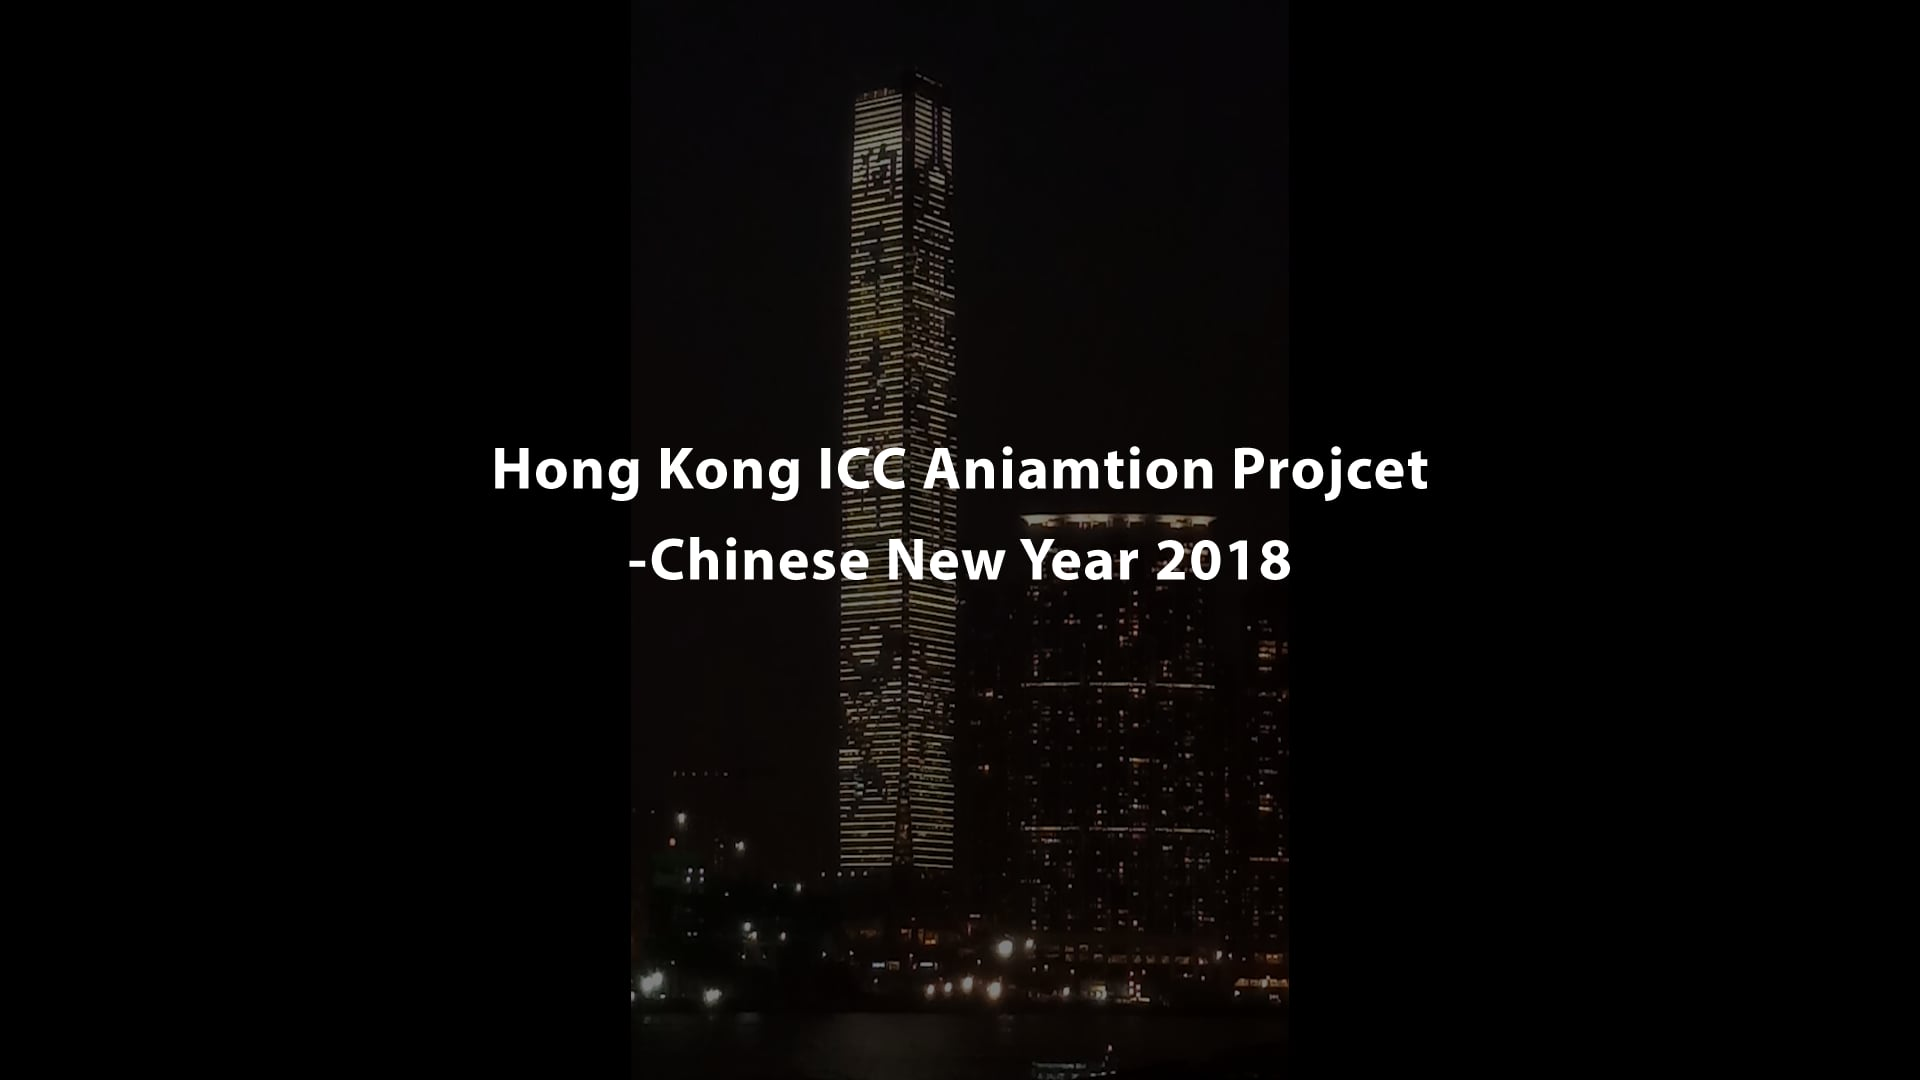 Hong Kong ICC Animation Project - Chinese New Year